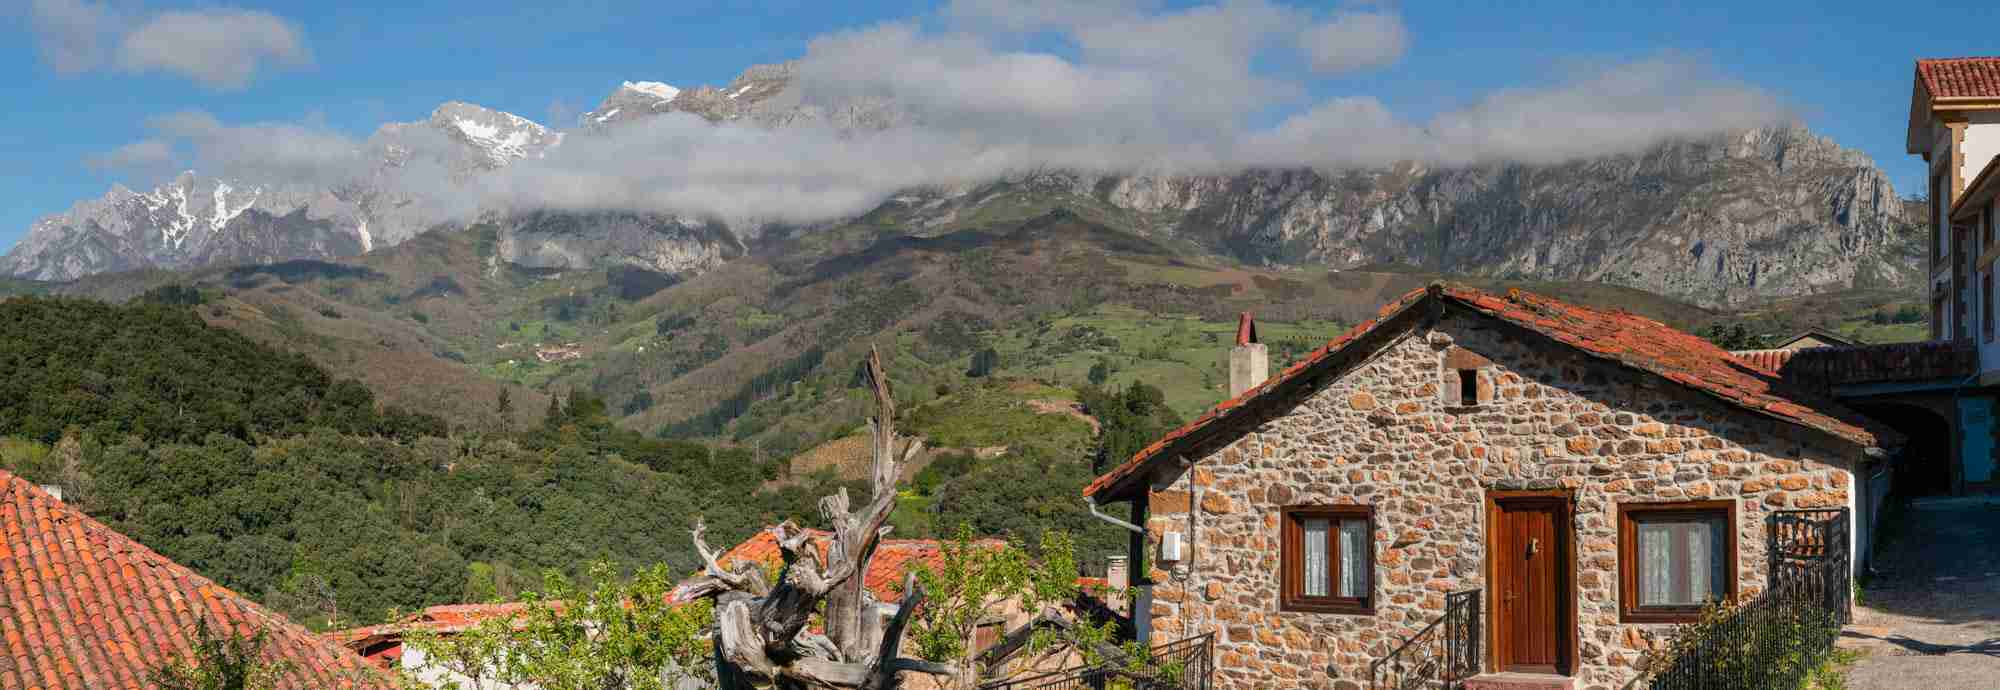 Rustical charm with best views of the irresistible Picos de Europa